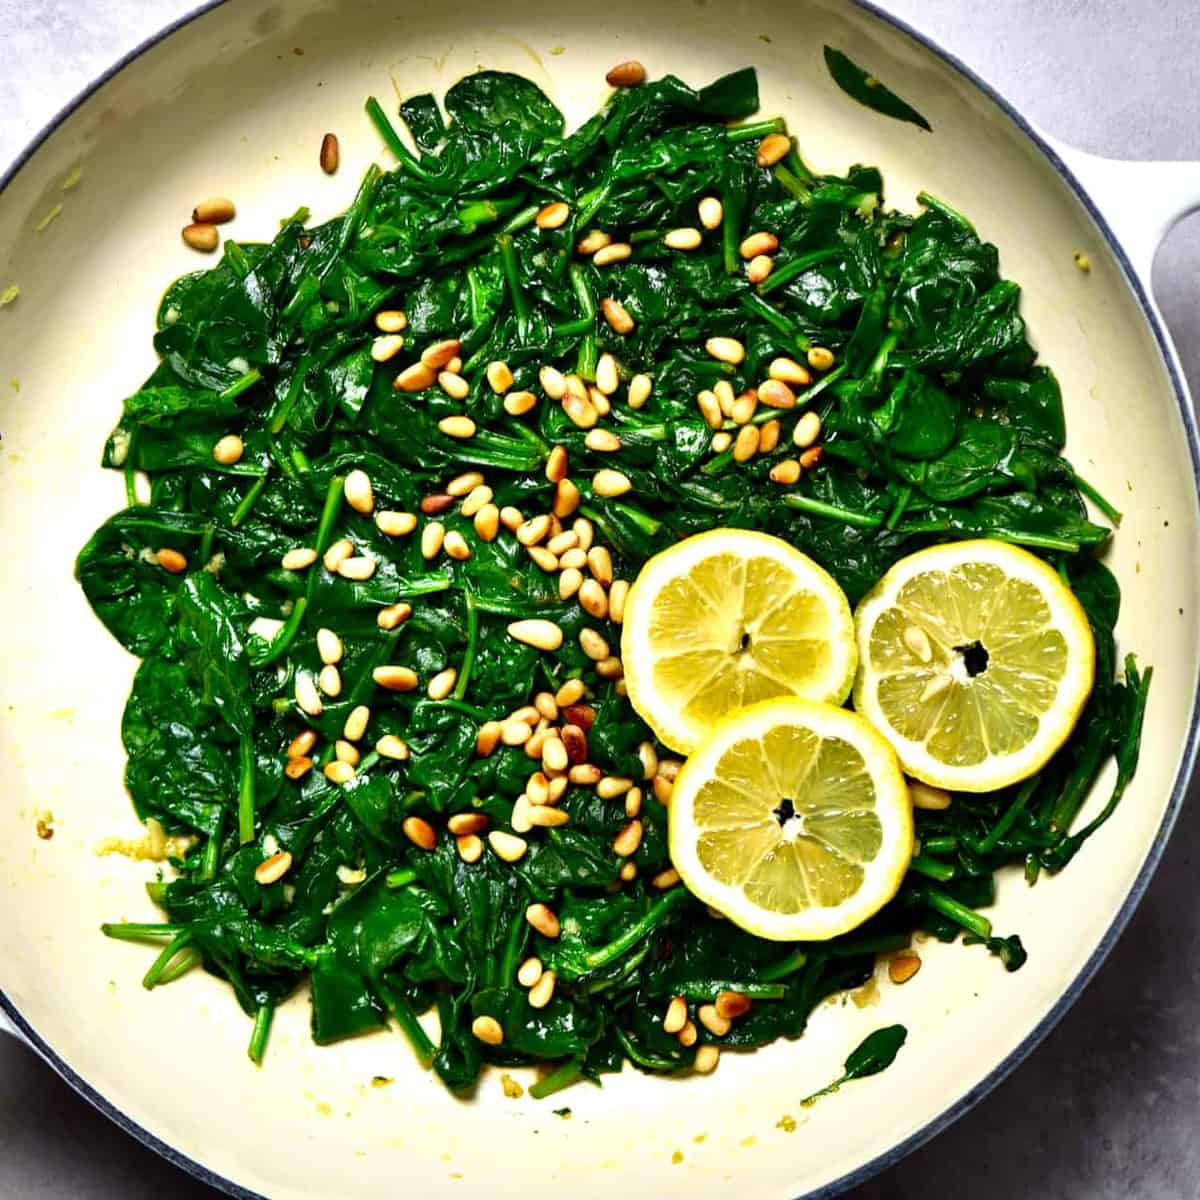 Square image of sautéed spinach